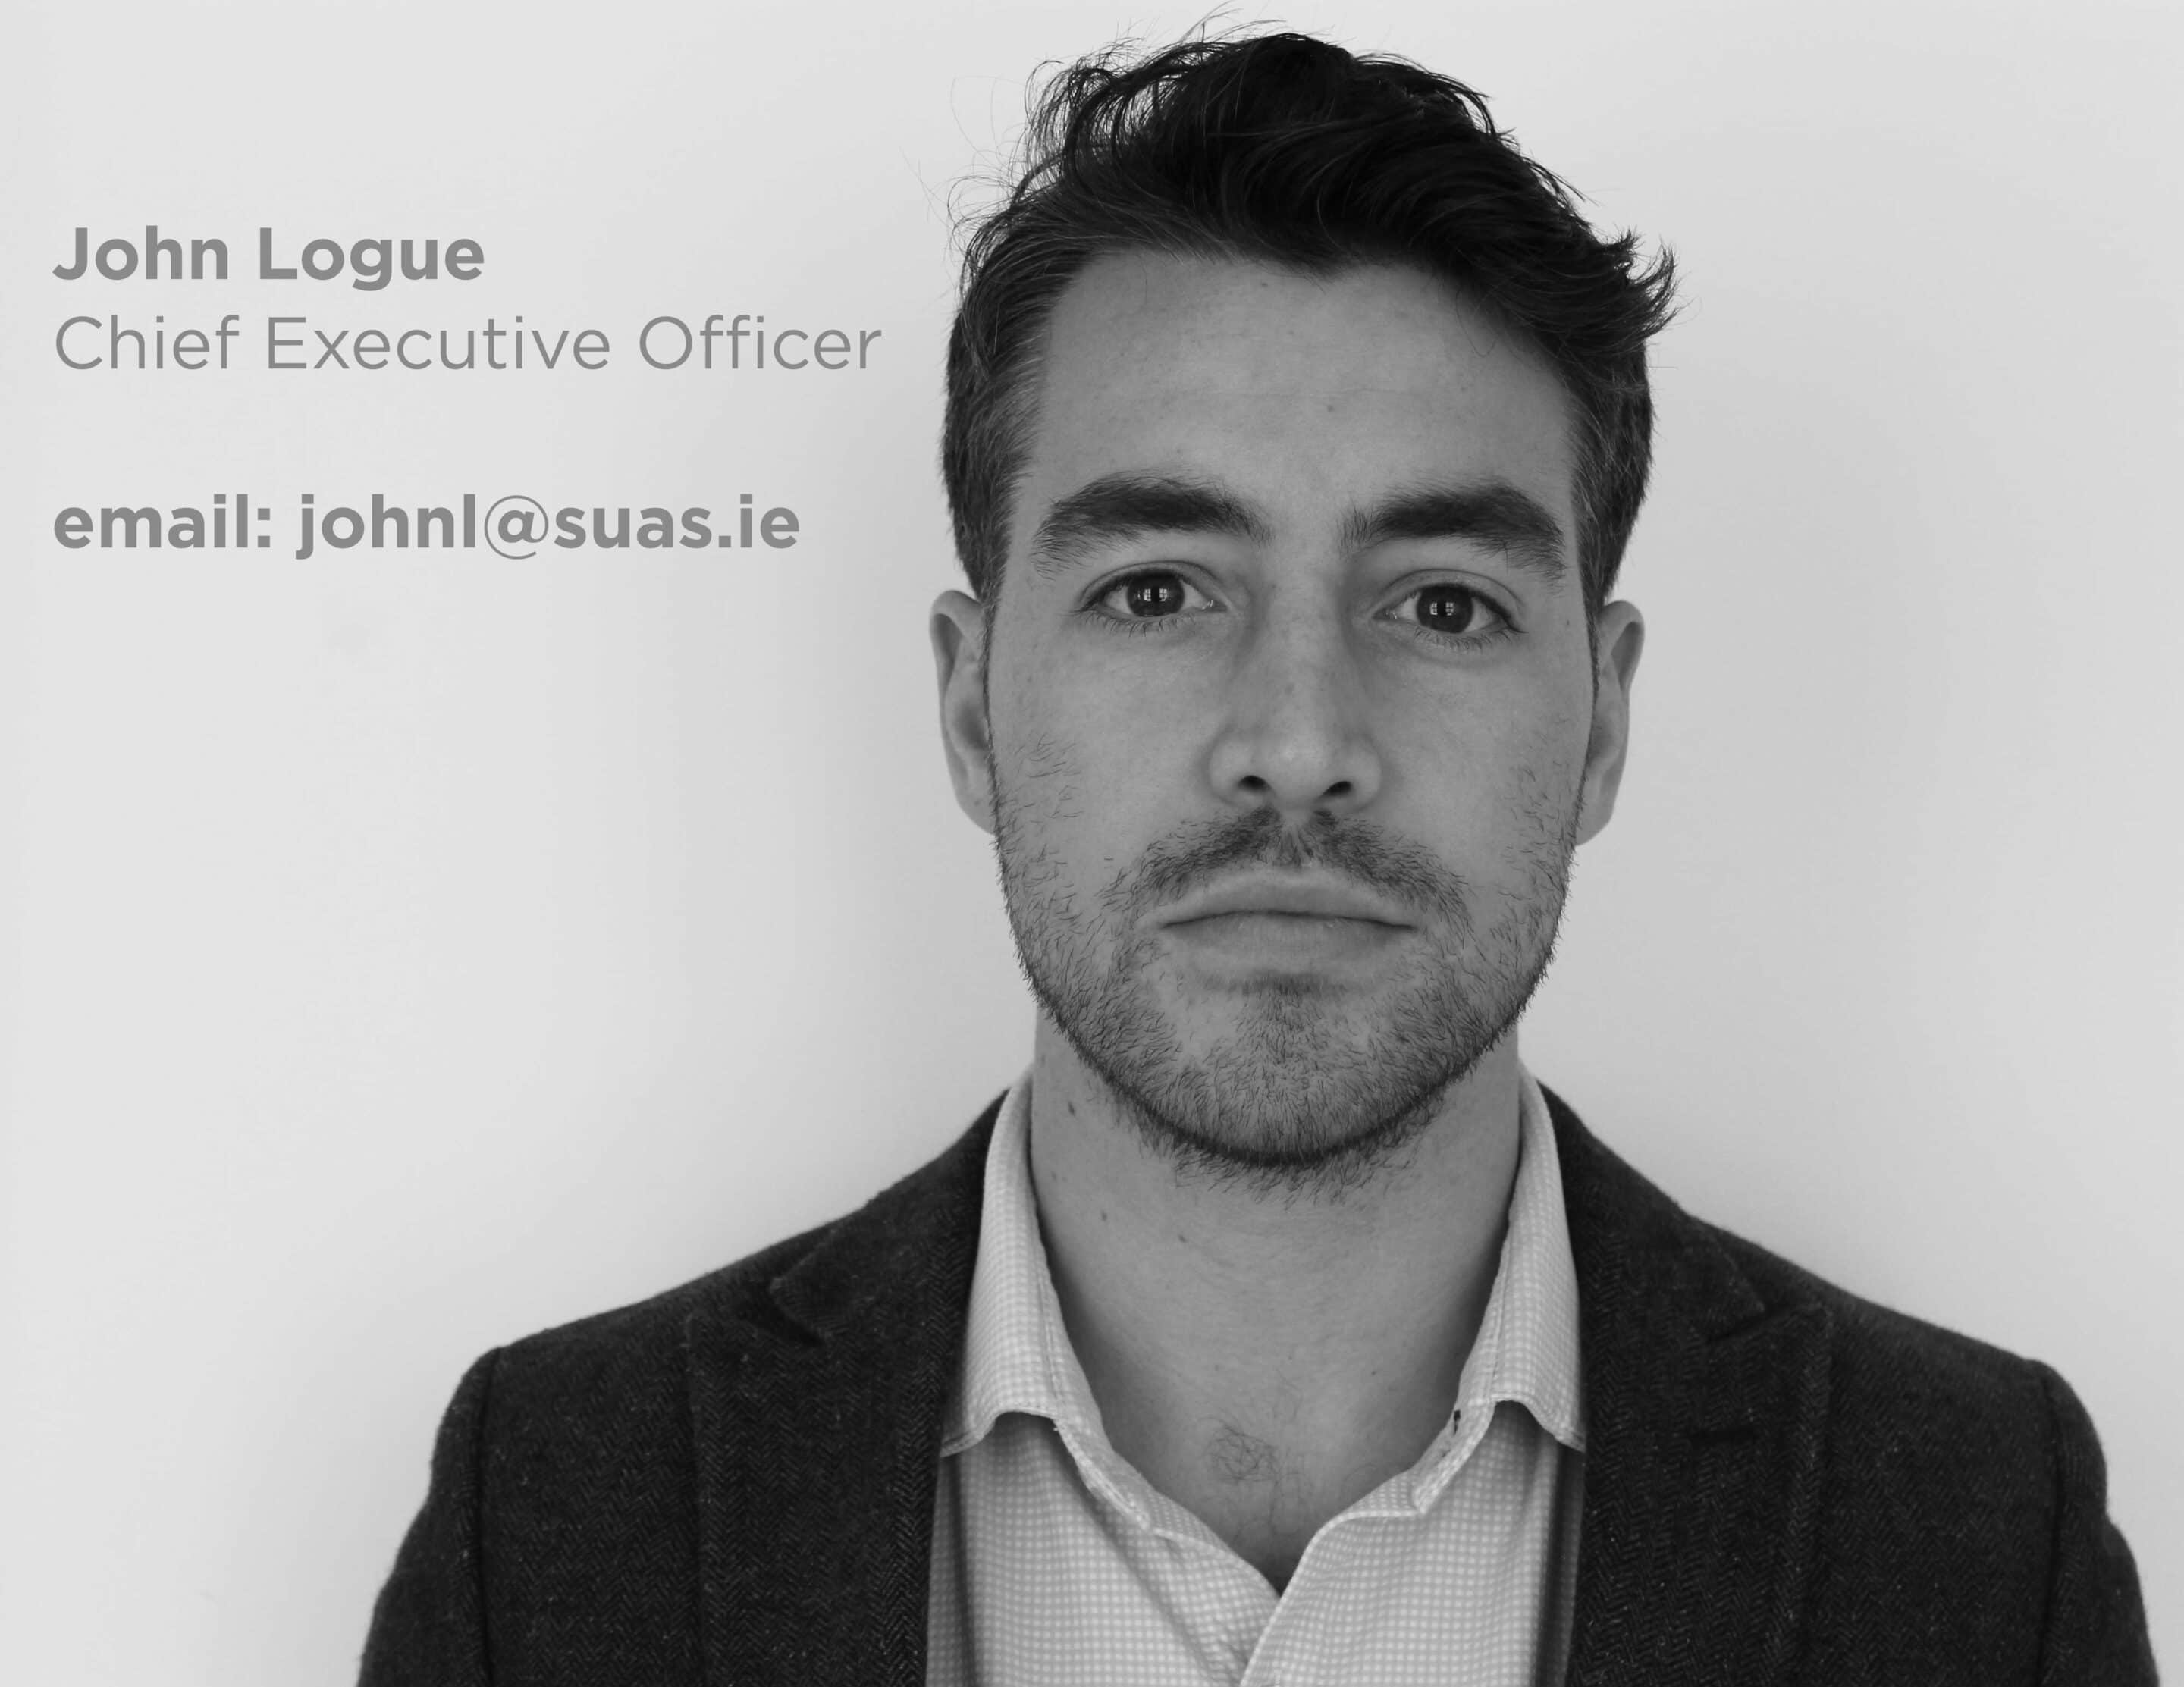 John Louge, Chief Executive Officer, Suas Educational Development